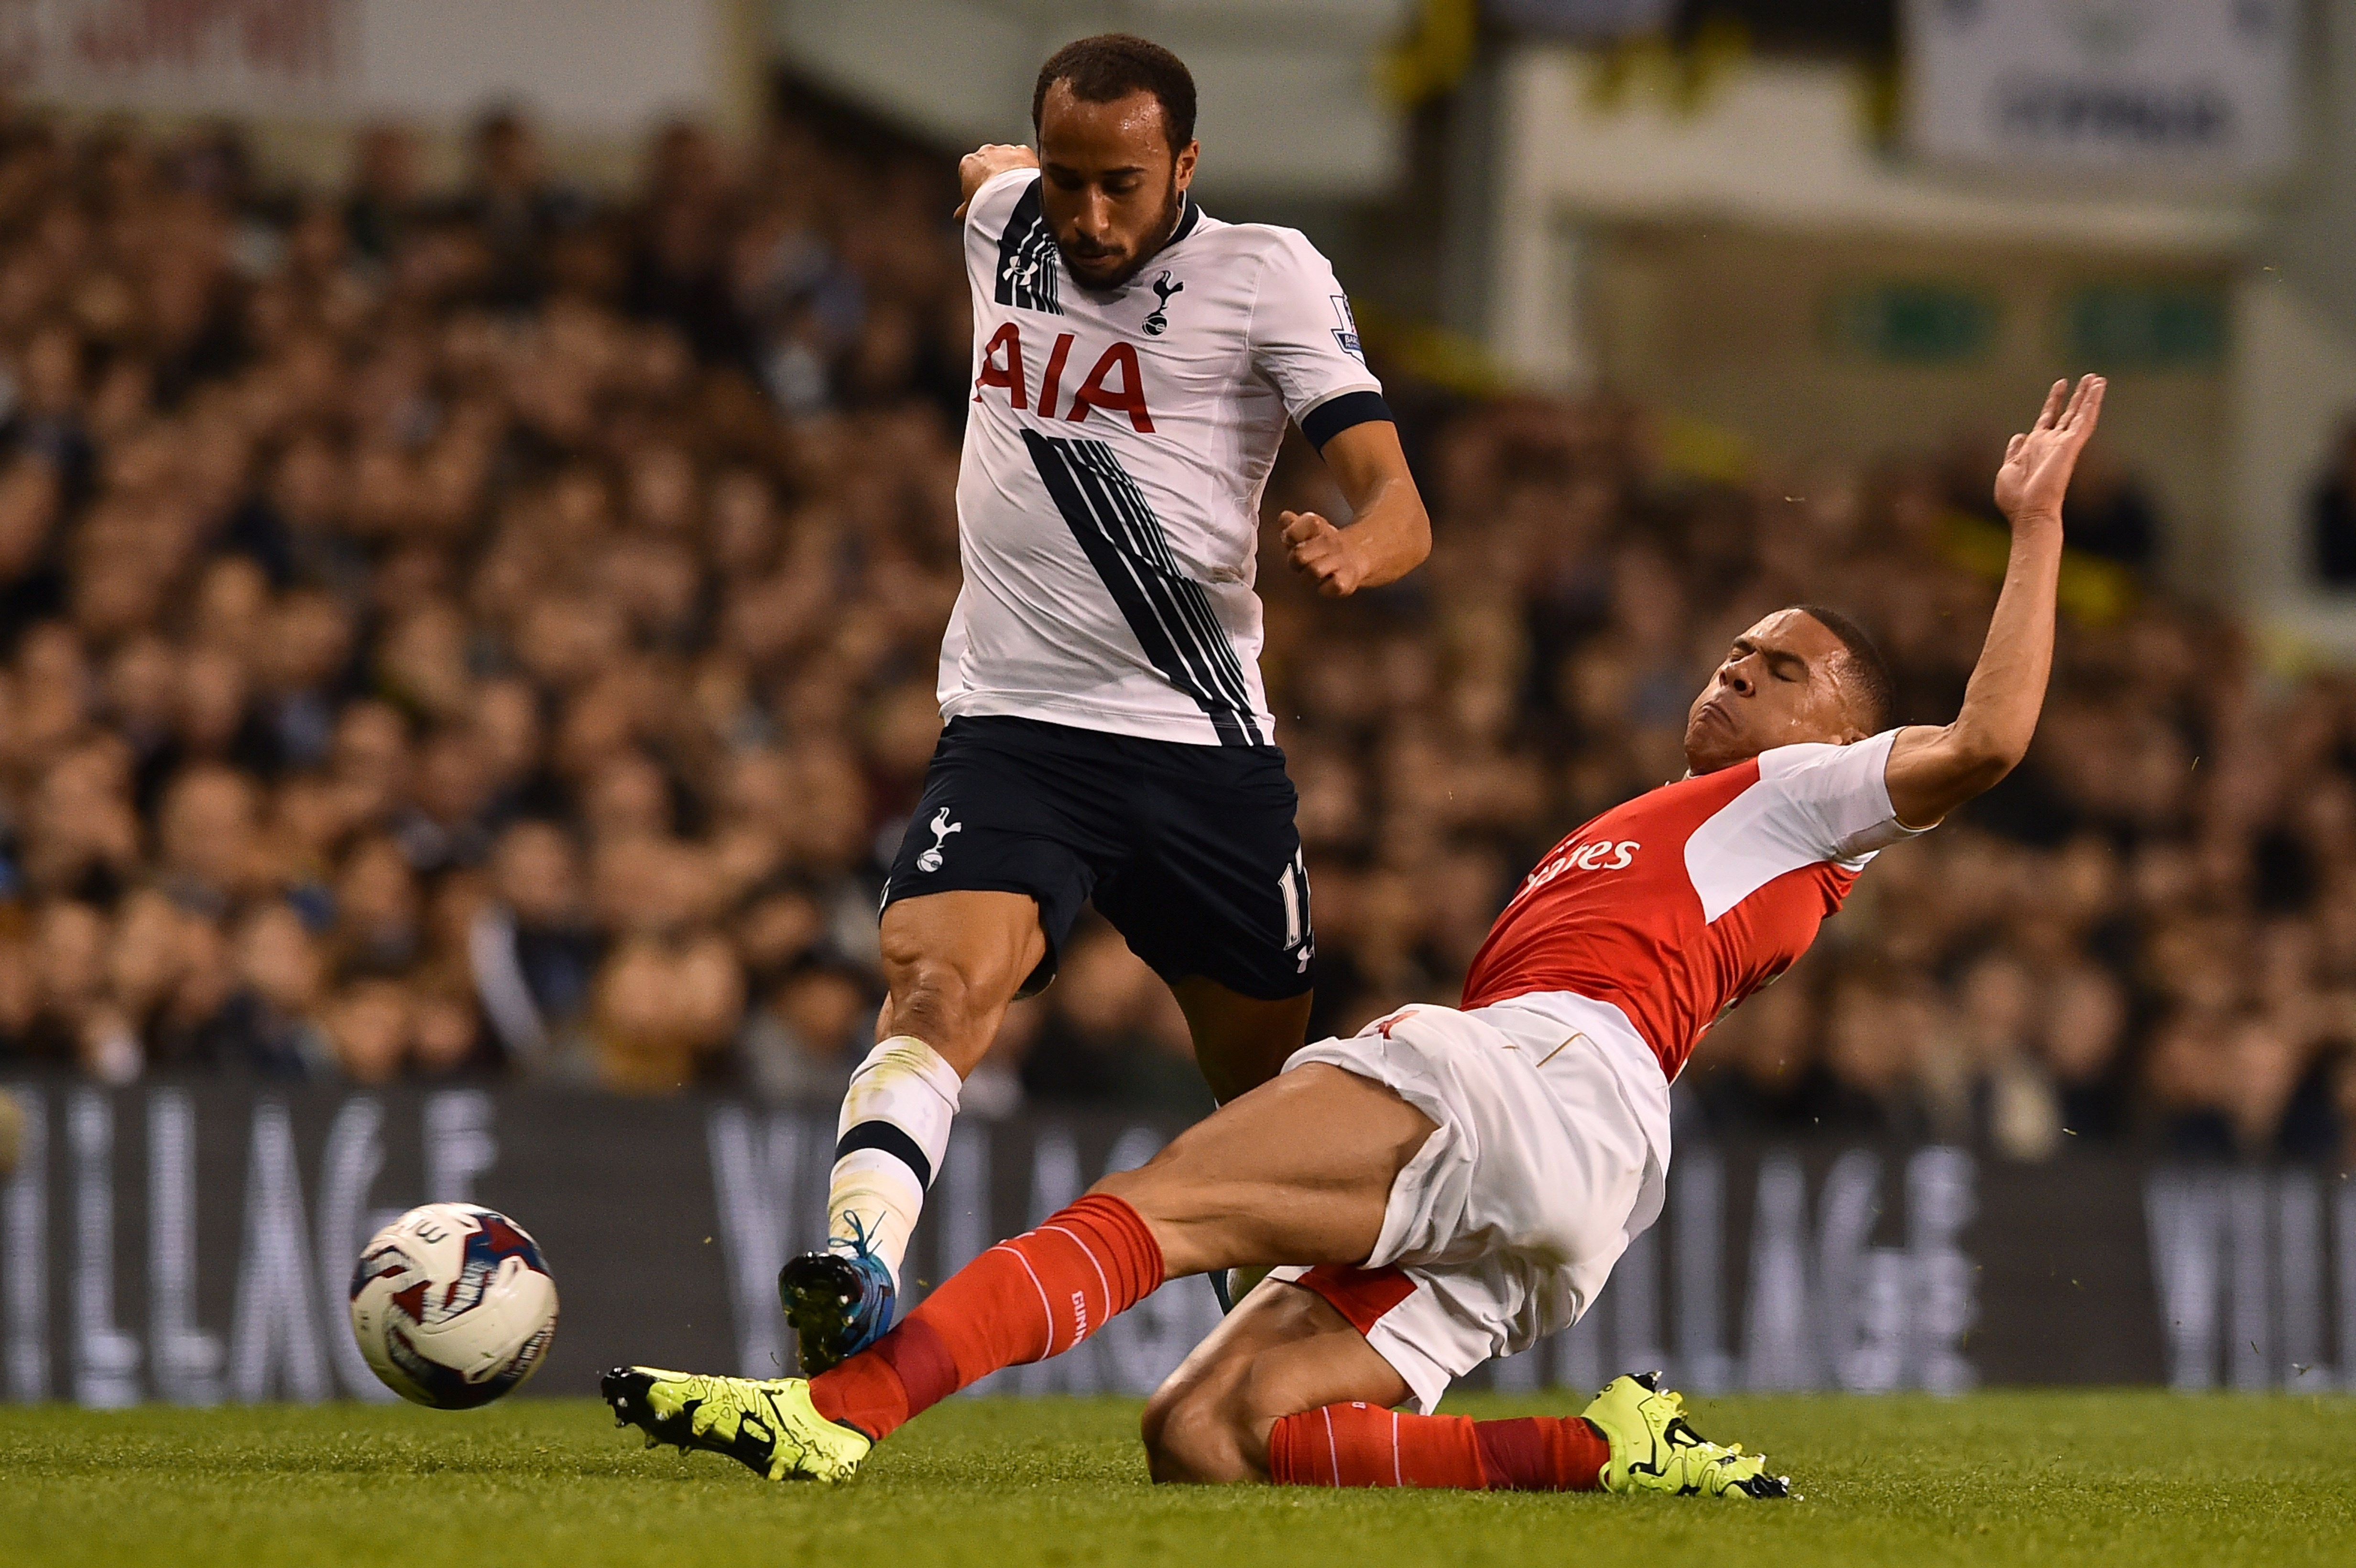 Newcastle close in on transfer of Andros Townsend – report